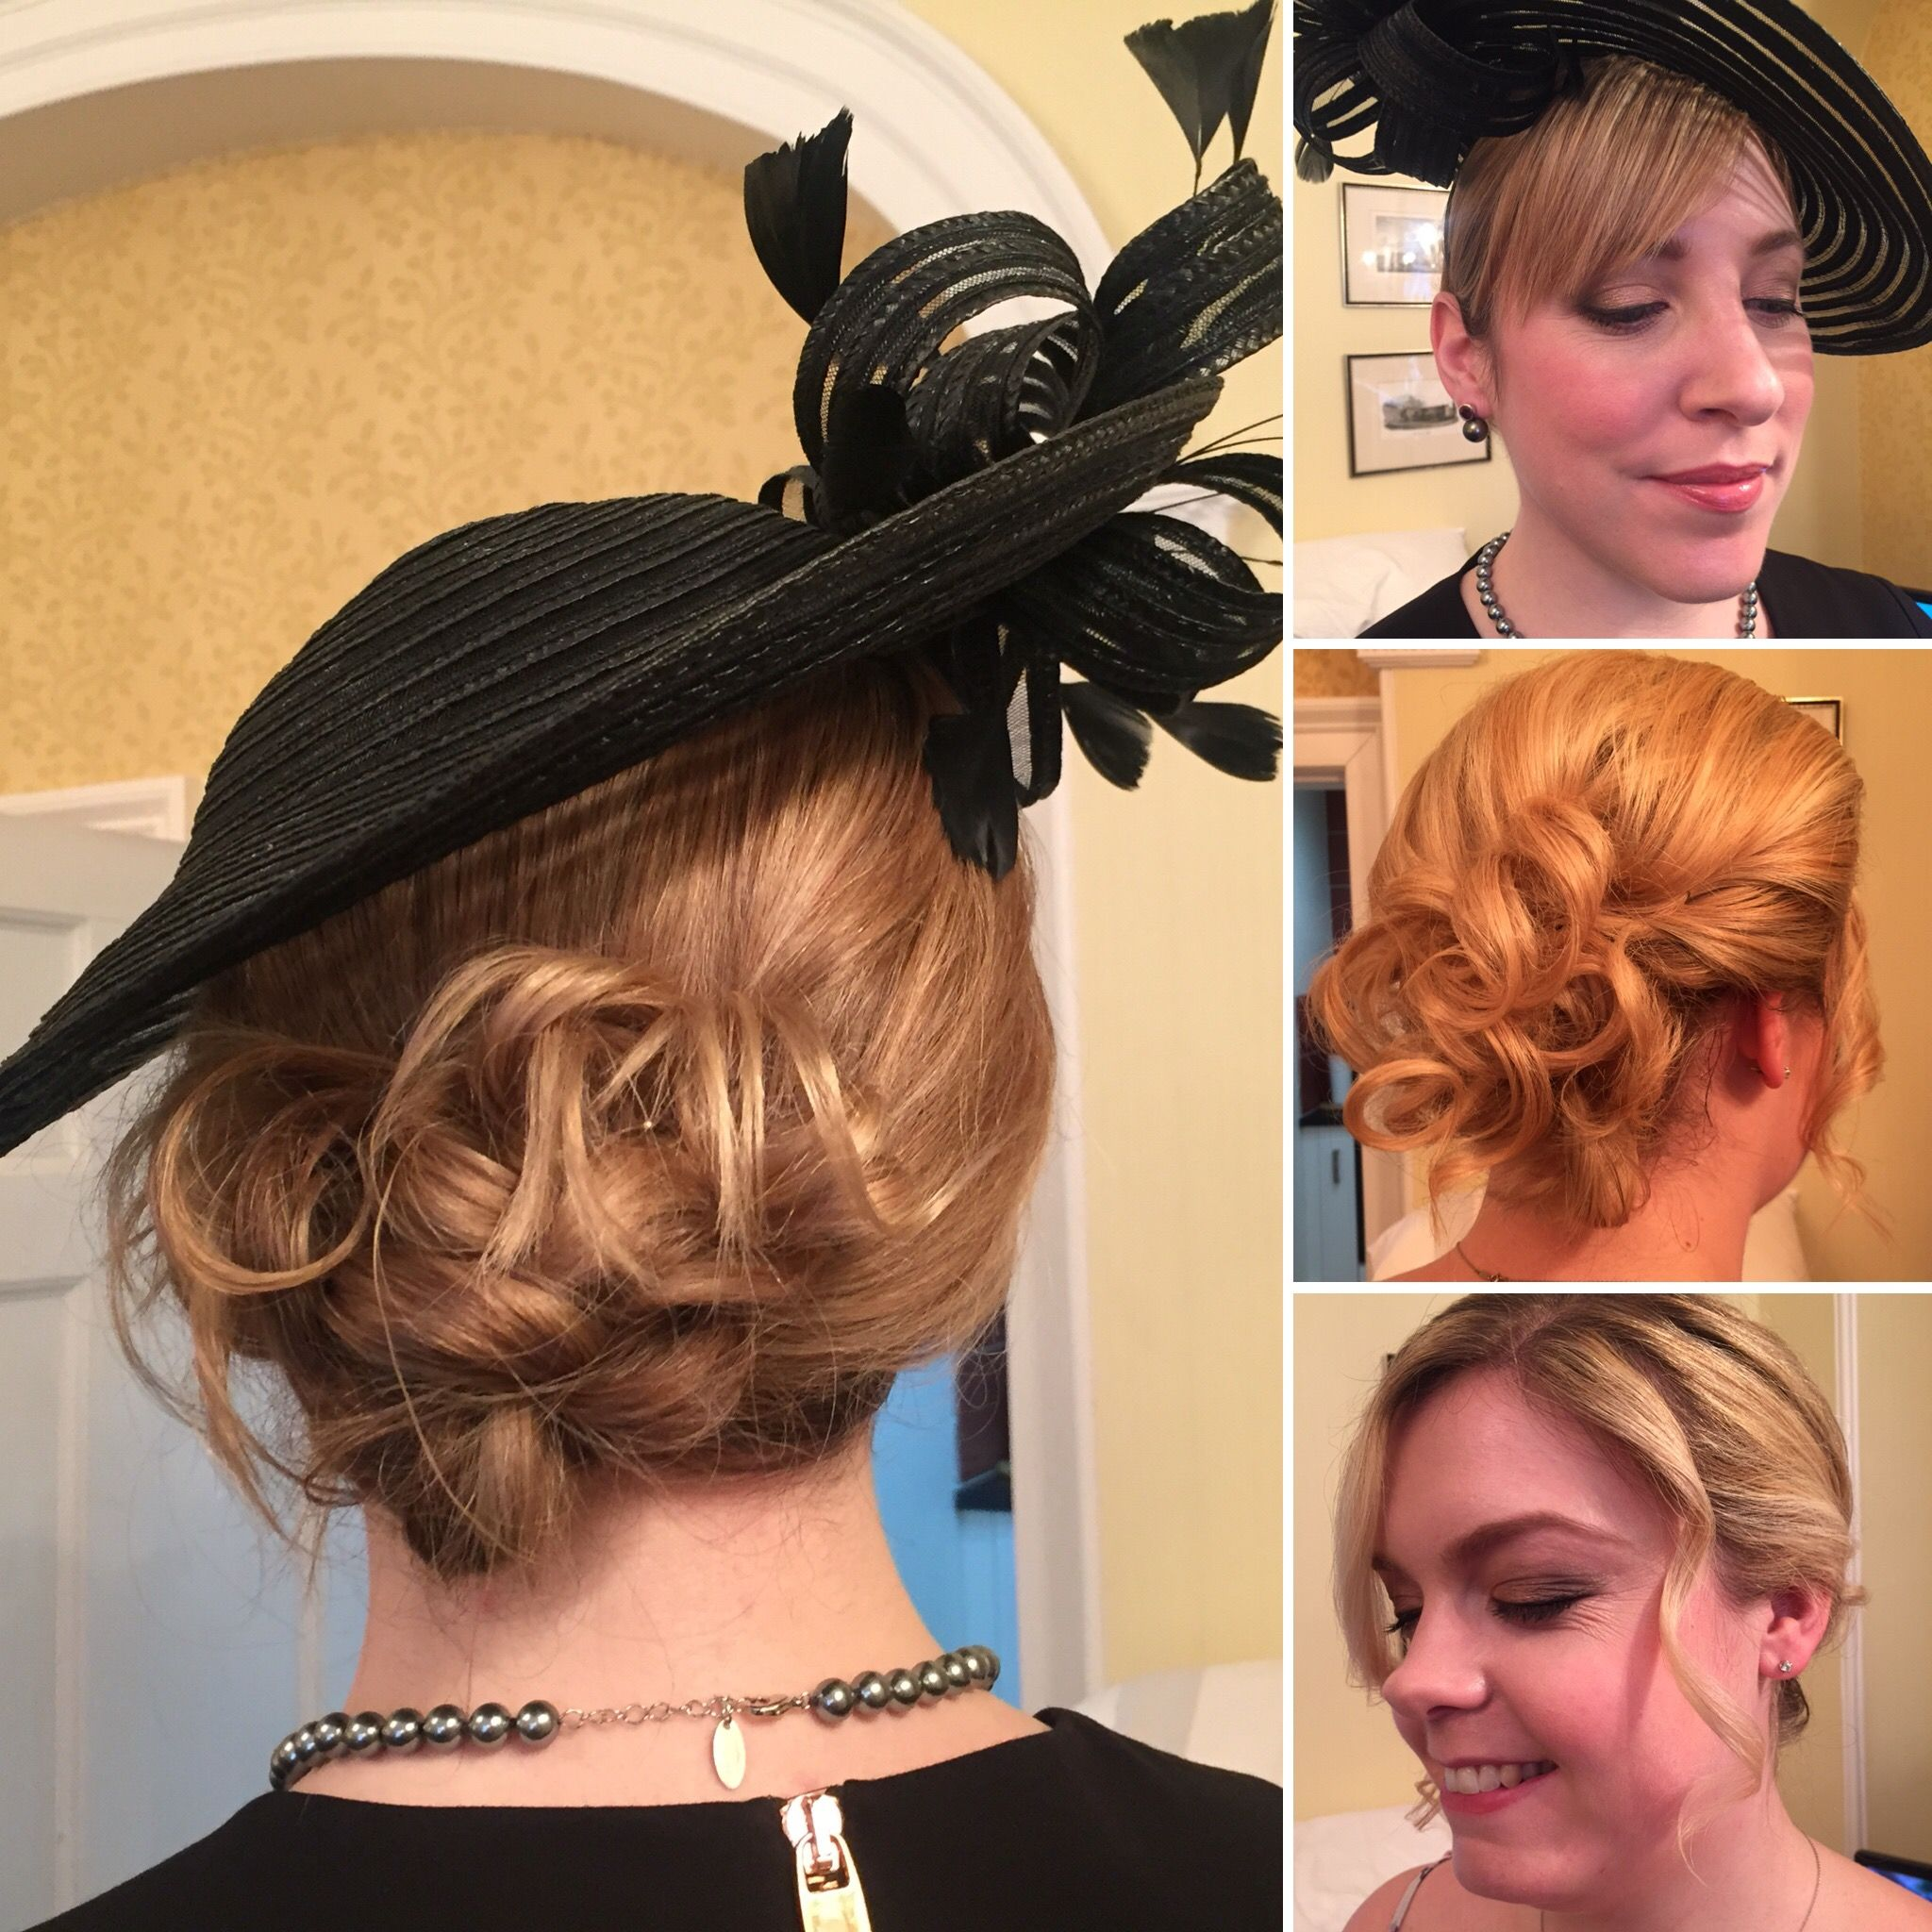 Wedding Hairstyle At Home: Wedding Guest Hair For Wedding 13.12.15 Messy Bun And